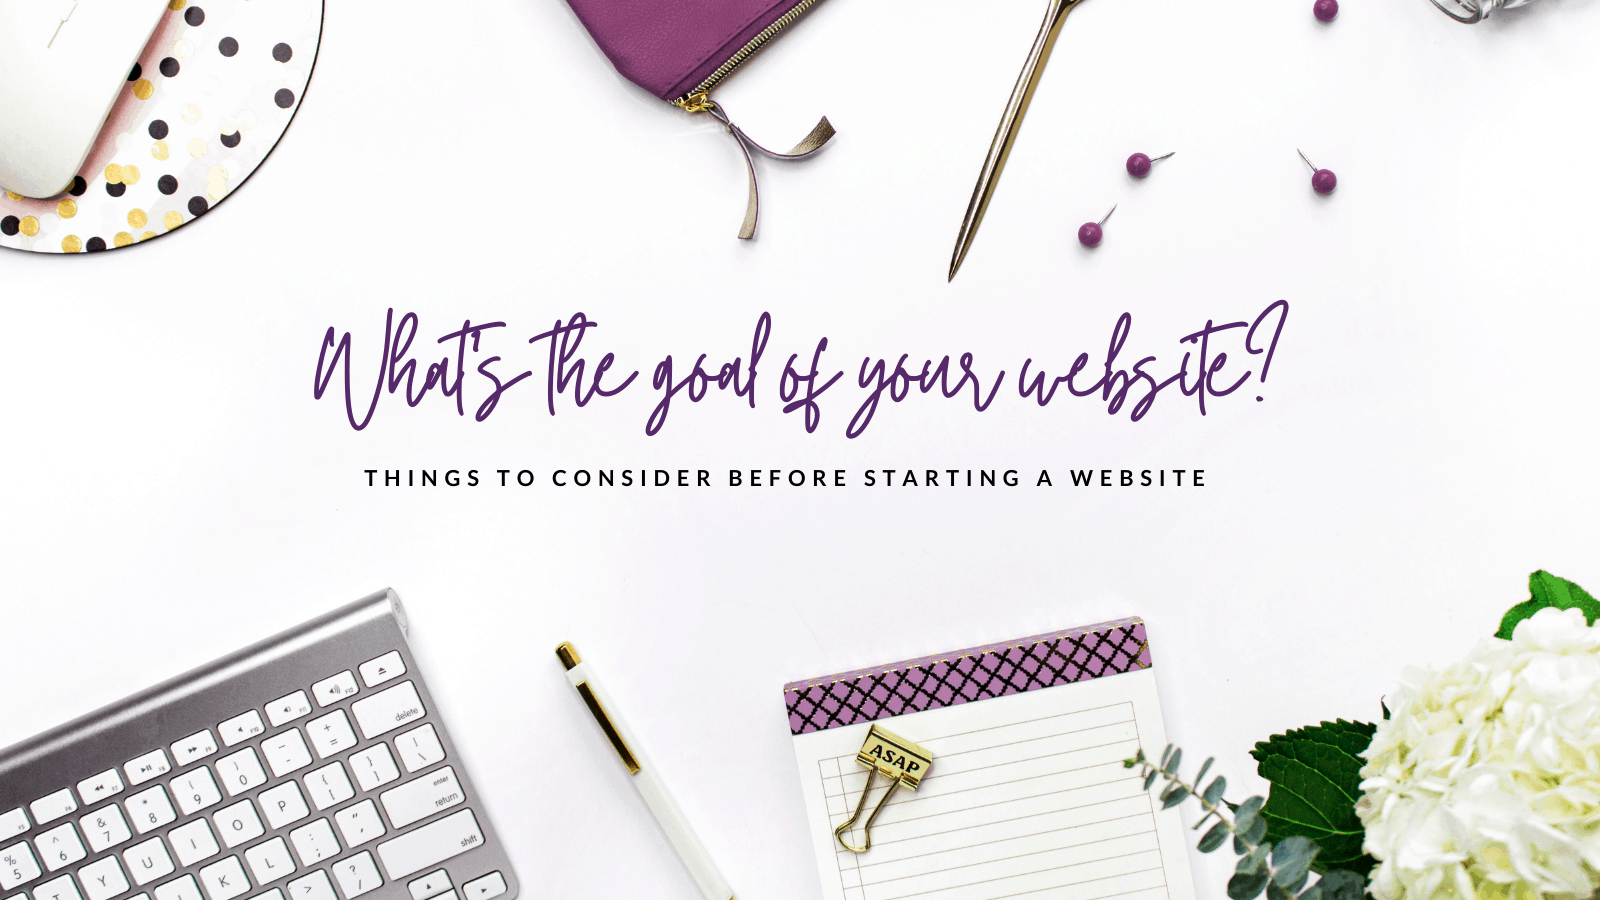 What is the goal? Things to consider before starting a website